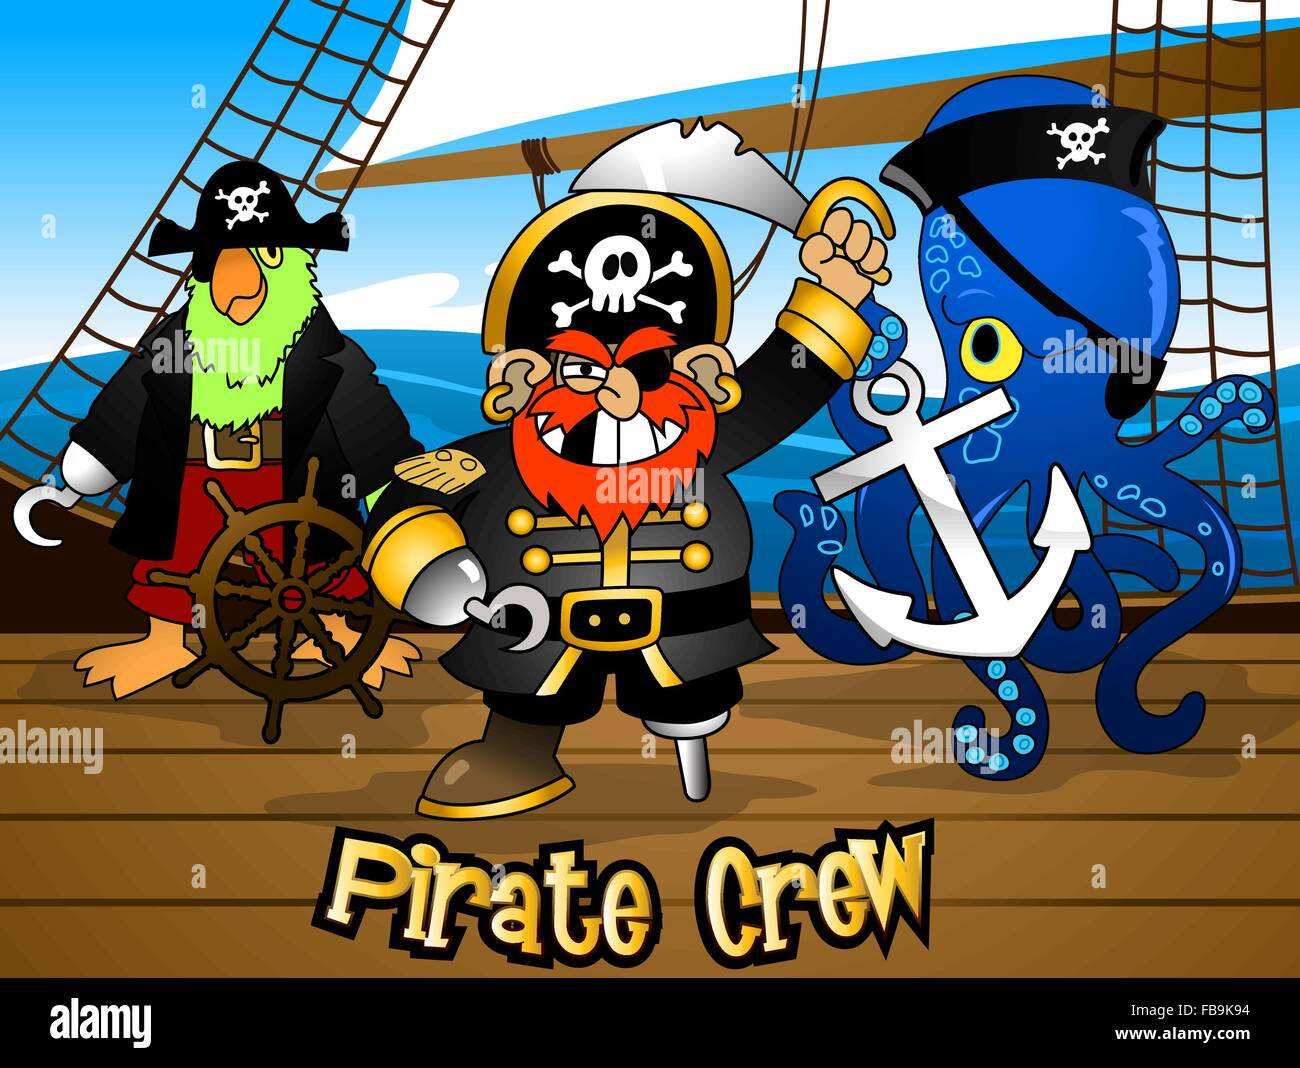 Image result for pirate crew